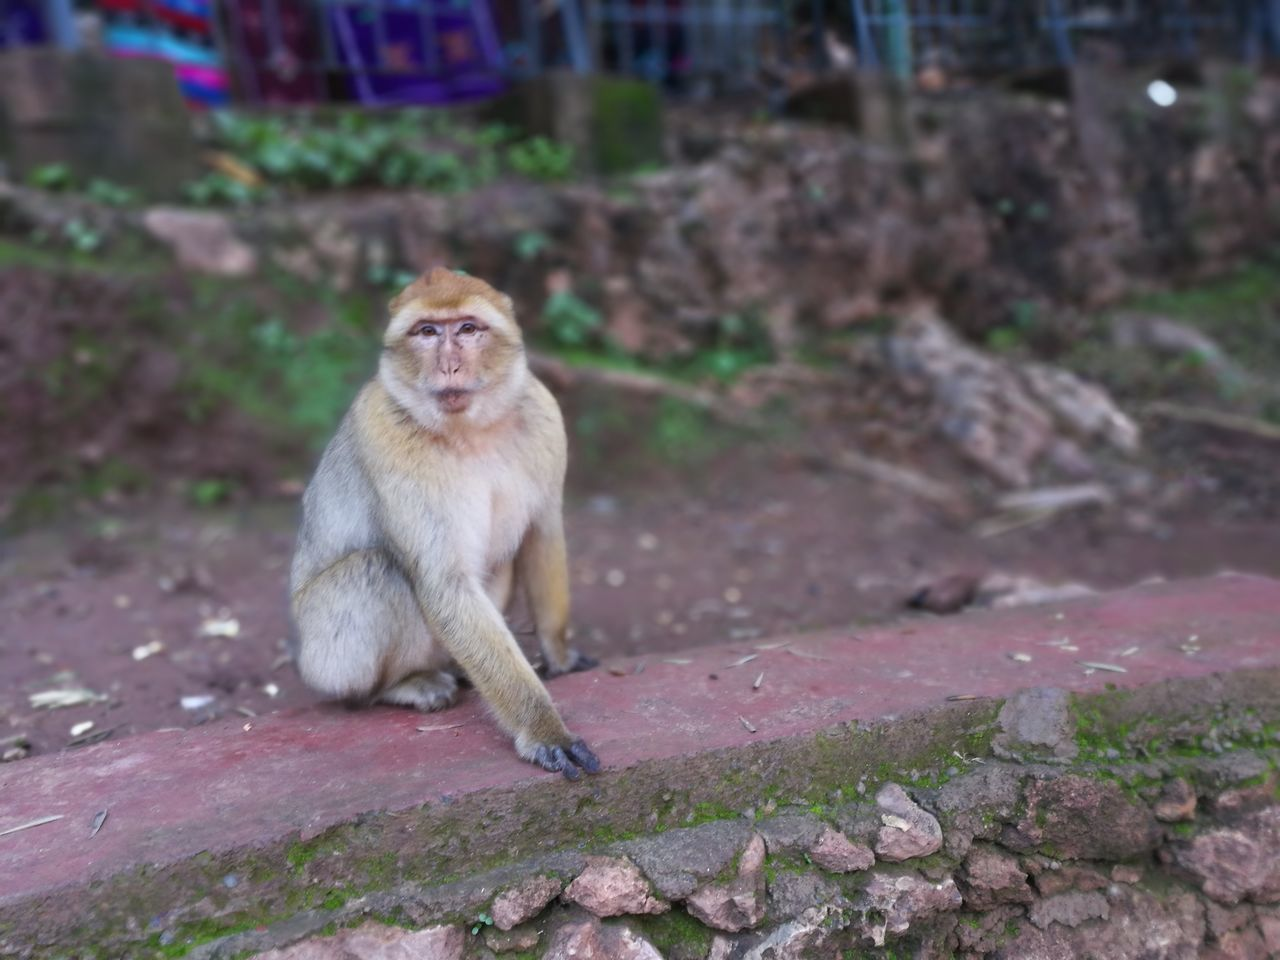 monkey in the park dell'ouzoud Animal Themes Animal Wildlife Animals In The Wild Day Macaca Macaco Macaque Mammal Monkey Monkeys Nature No People One Animal Outdoors Ouzoud Primate Sitting